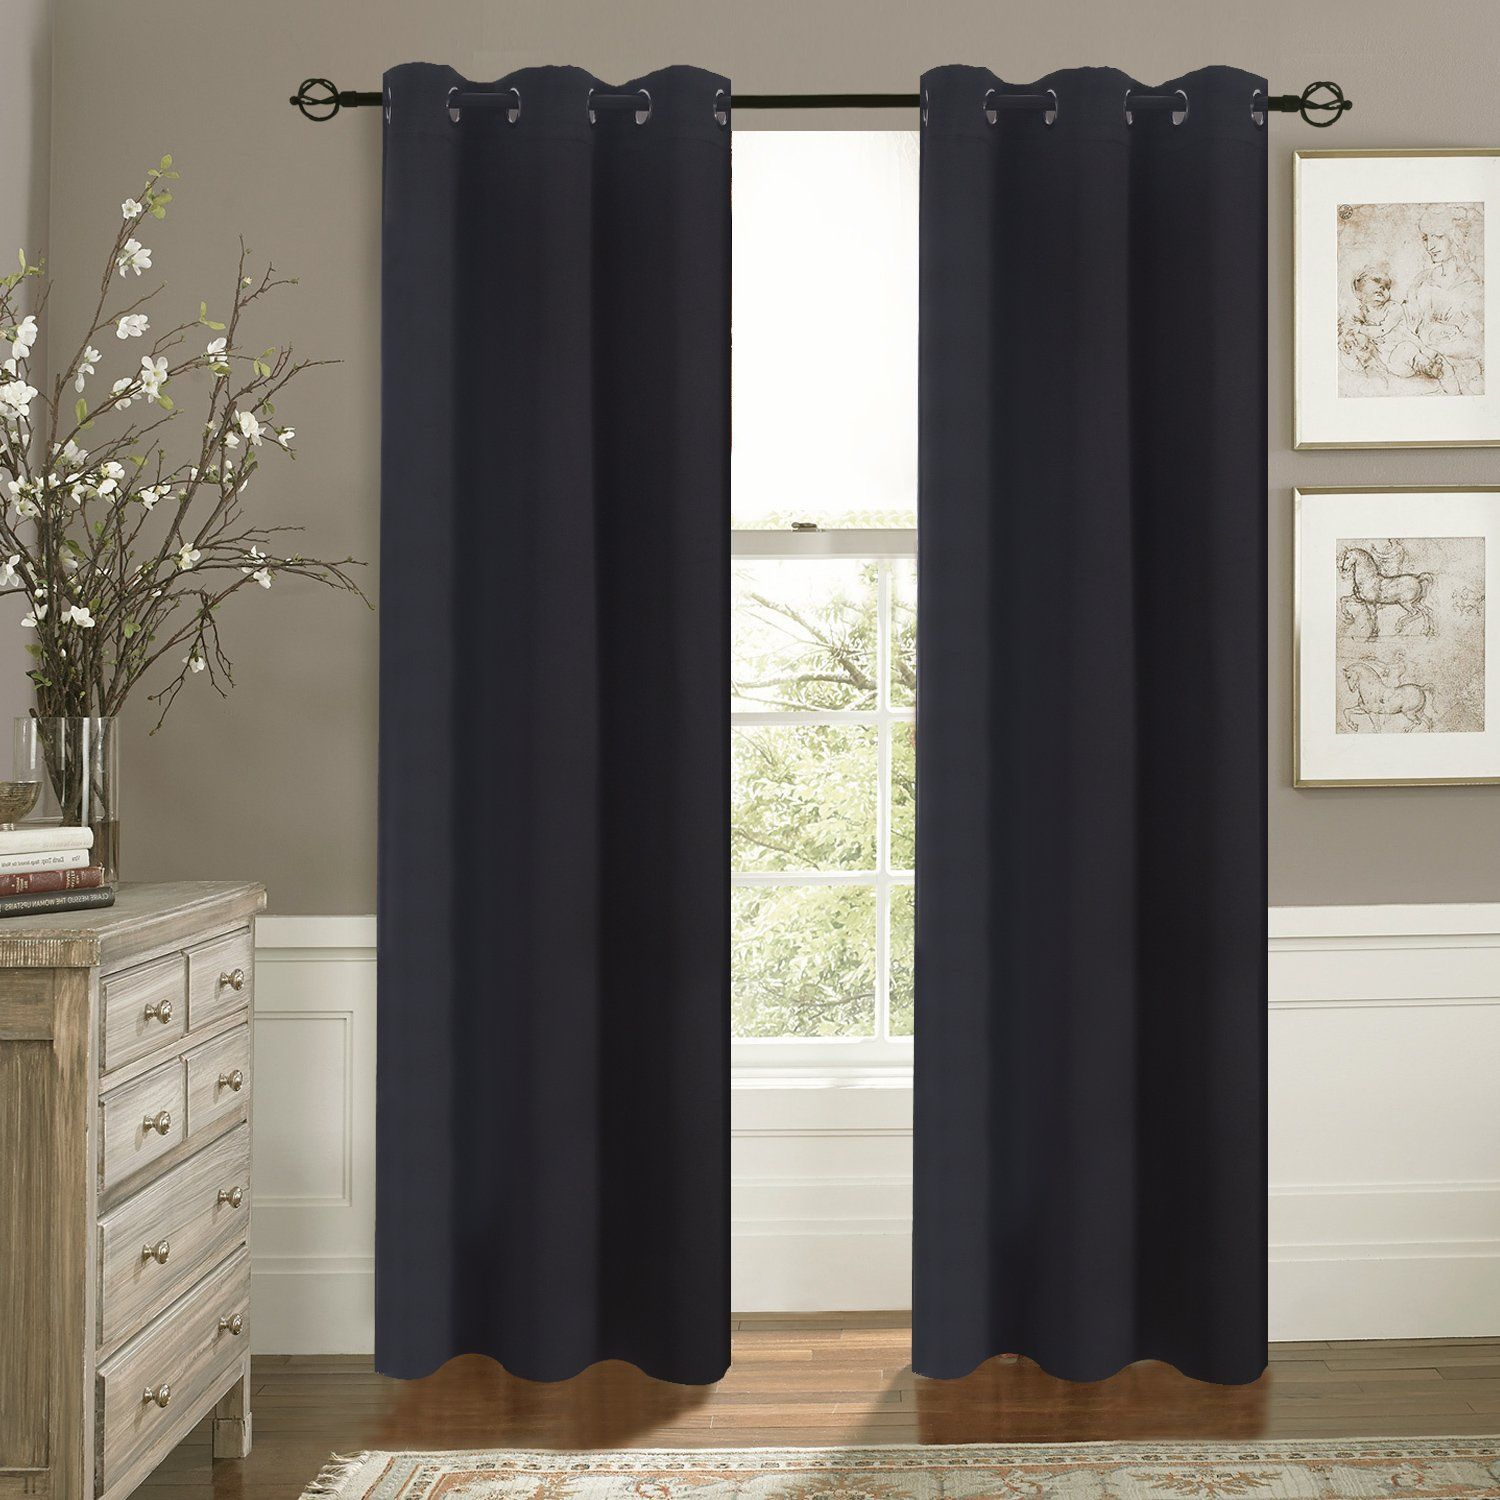 Buy Black Window Curtains Now Recipes With More Insulated